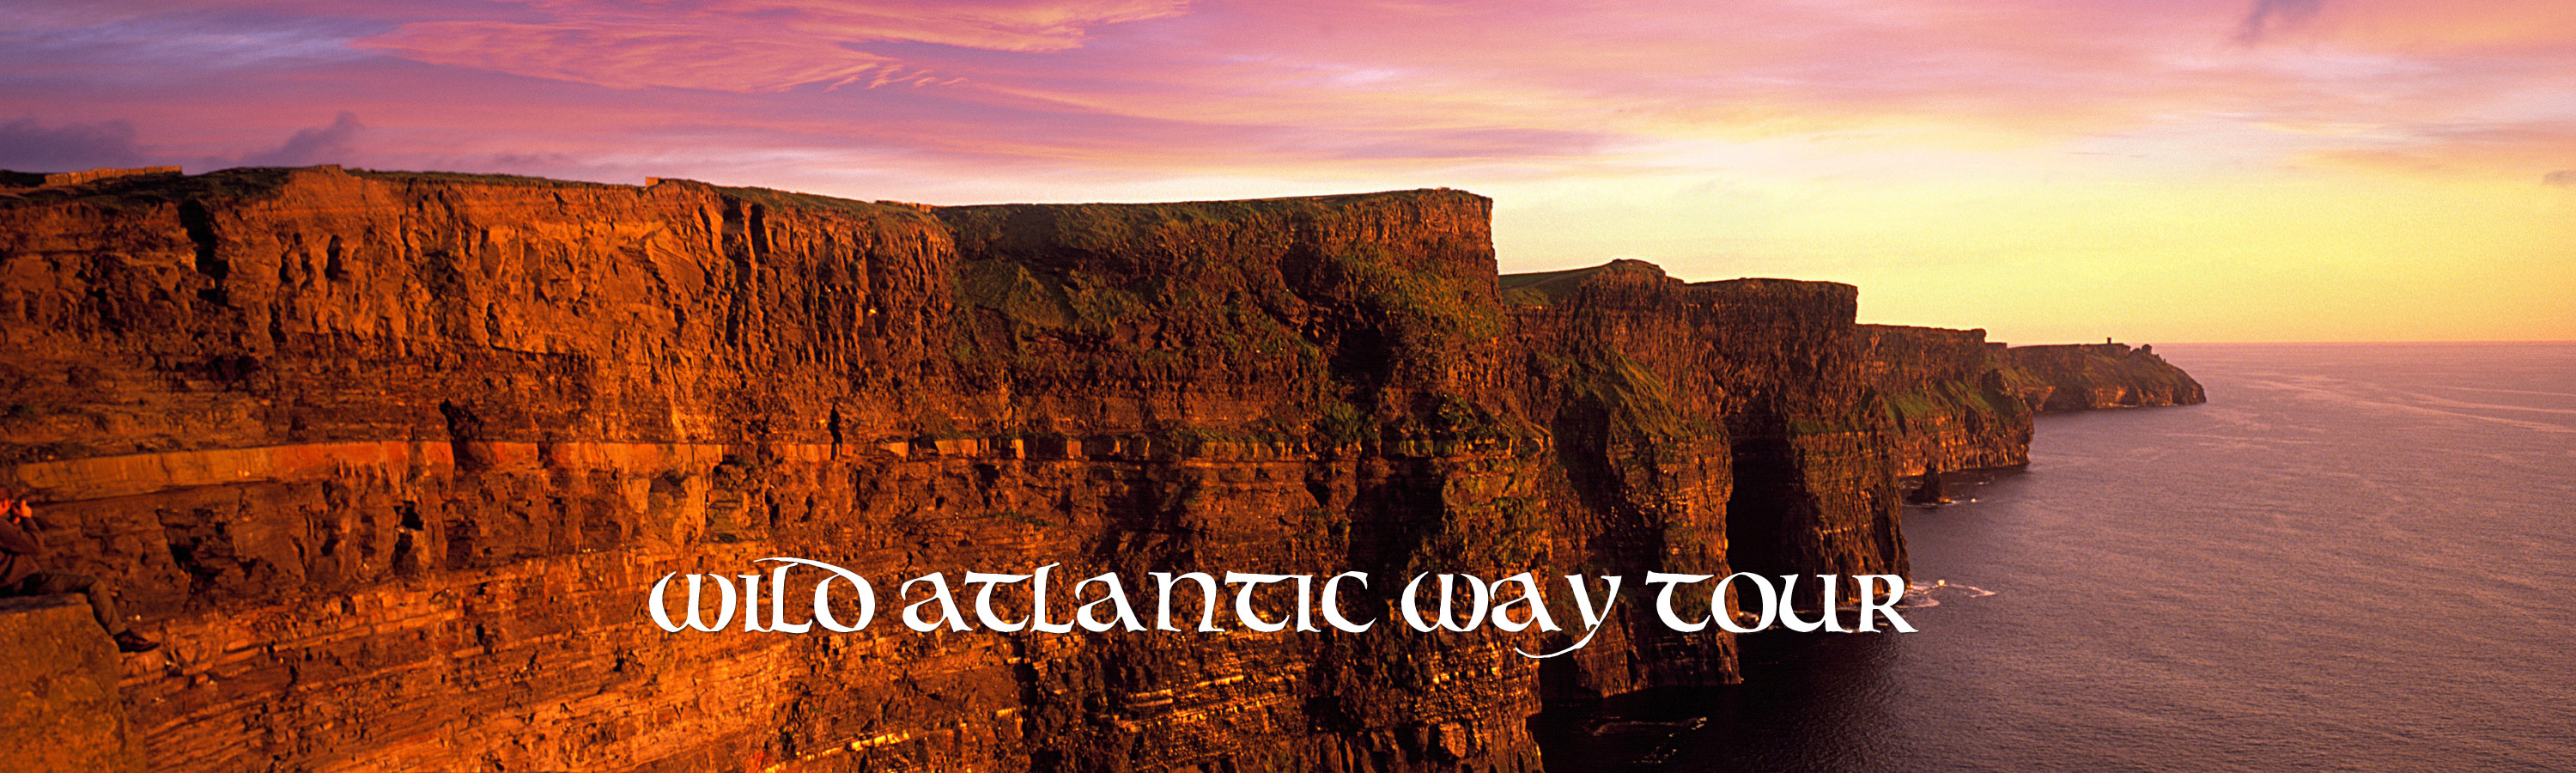 Wild Atlantic Way tour